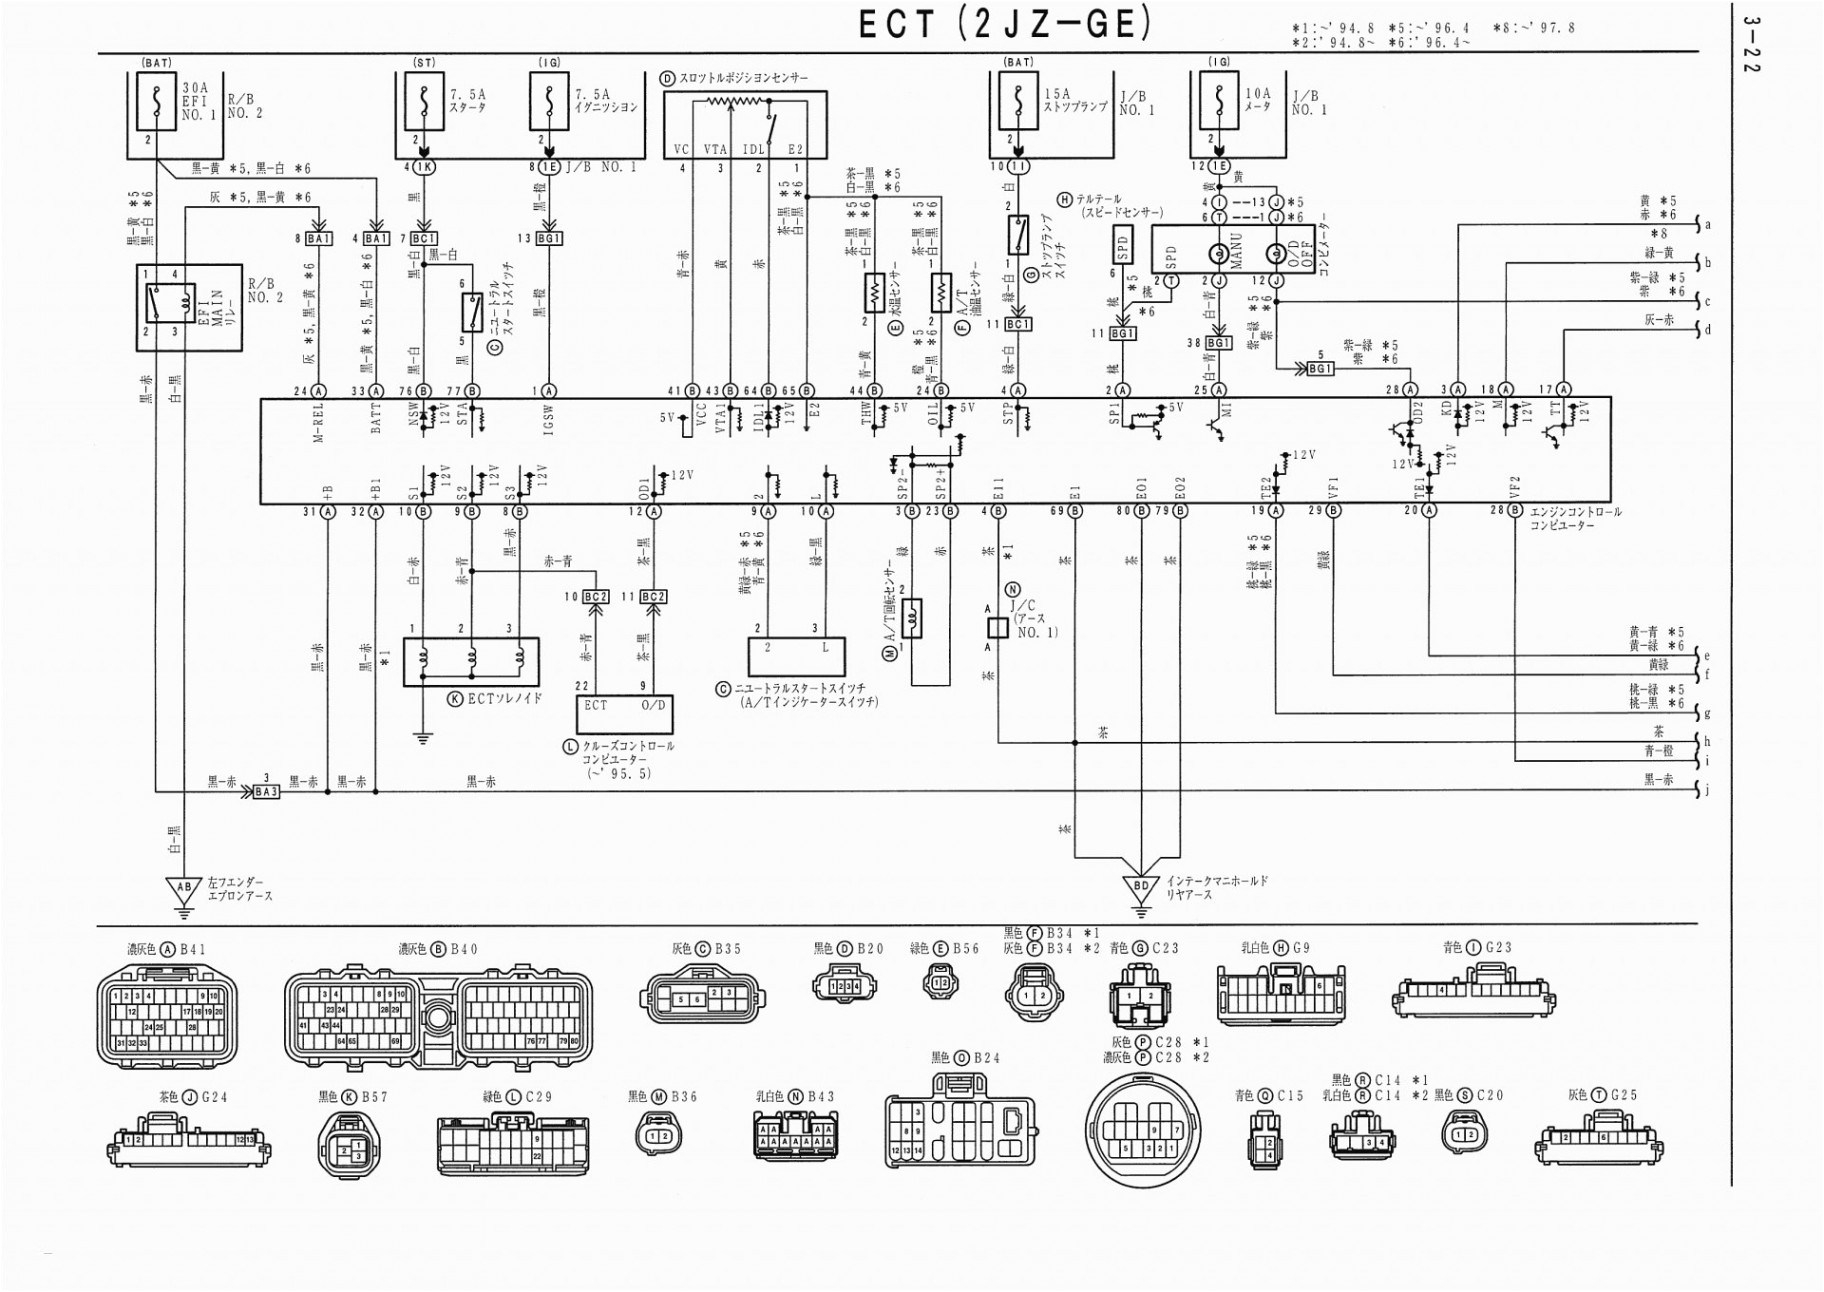 home network wiring wiring diagram databasehome network wiring layout